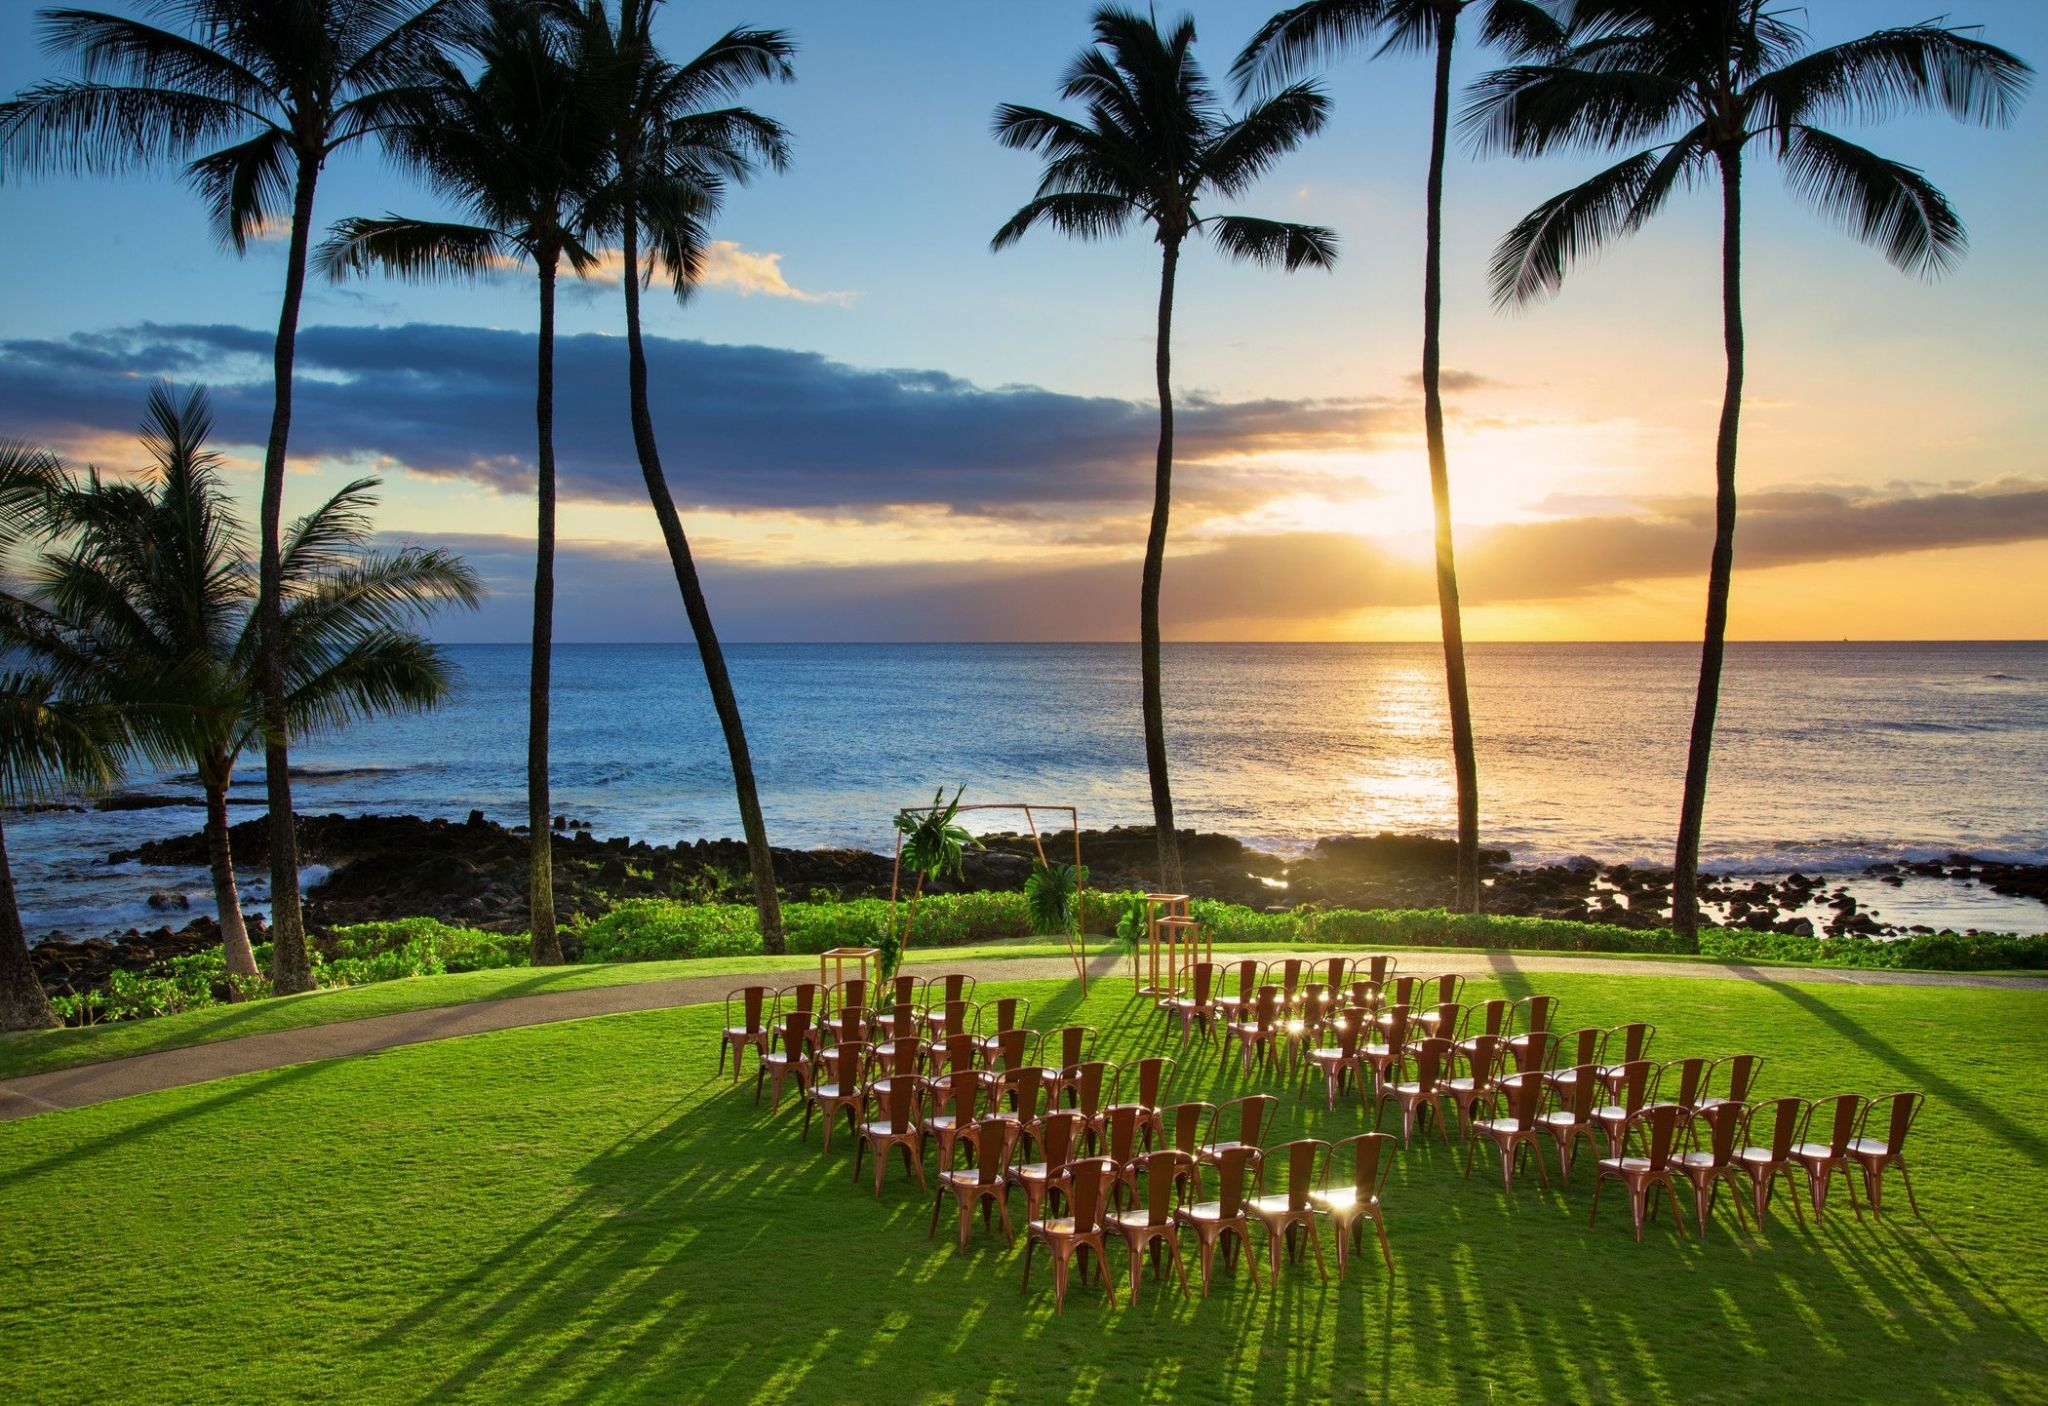 Kauai Beach Wedding - Ocean Lawn